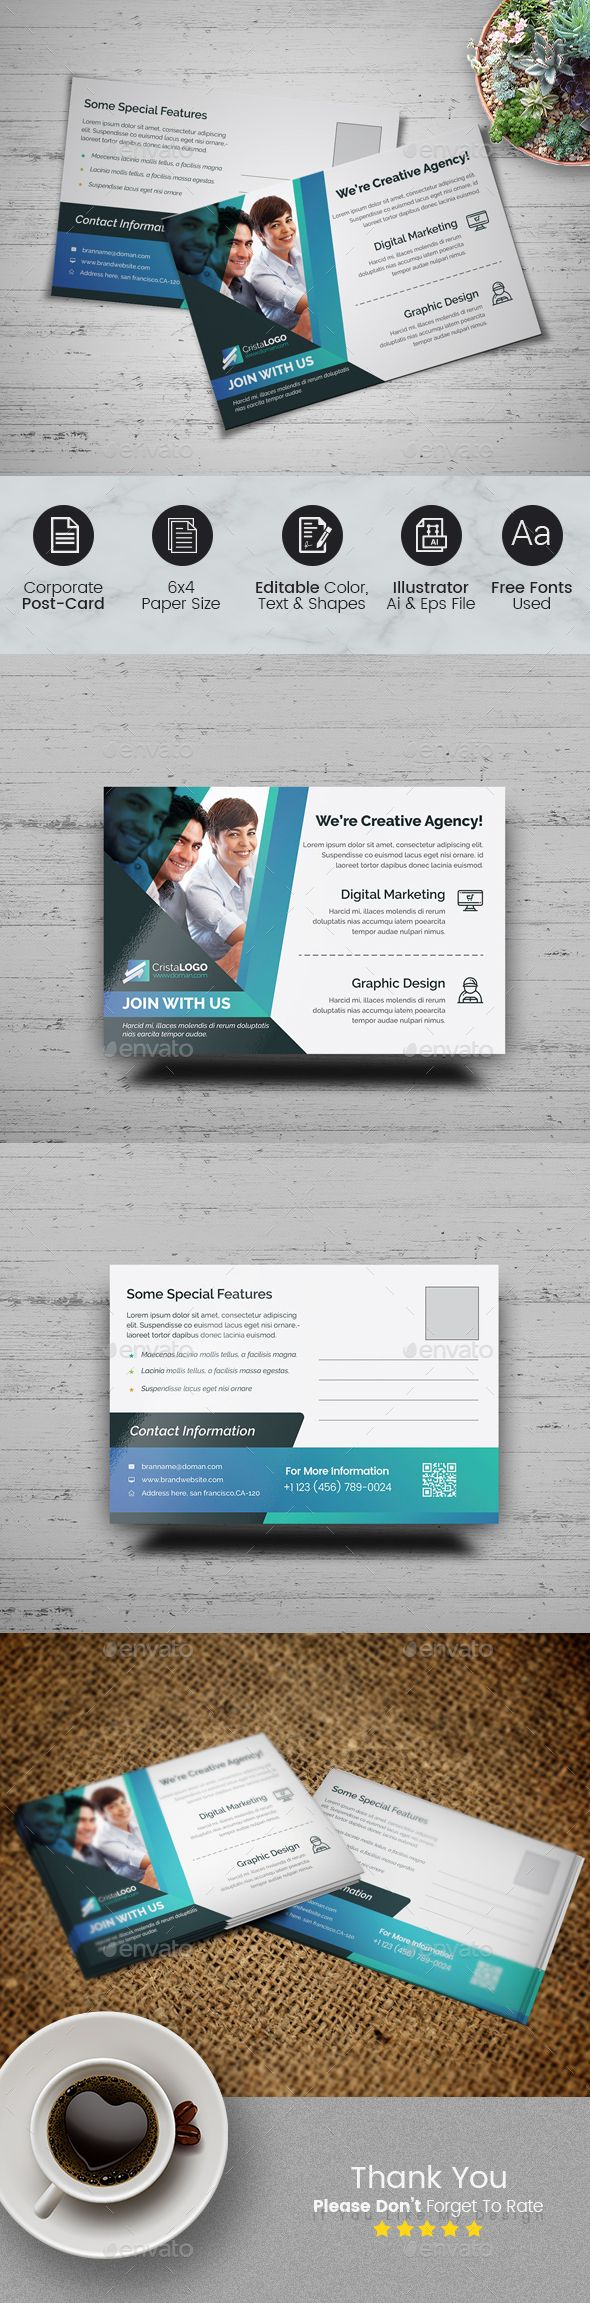 Business postcard template business postcards postcard template business postcard template business postcards postcard template and print templates wajeb Gallery